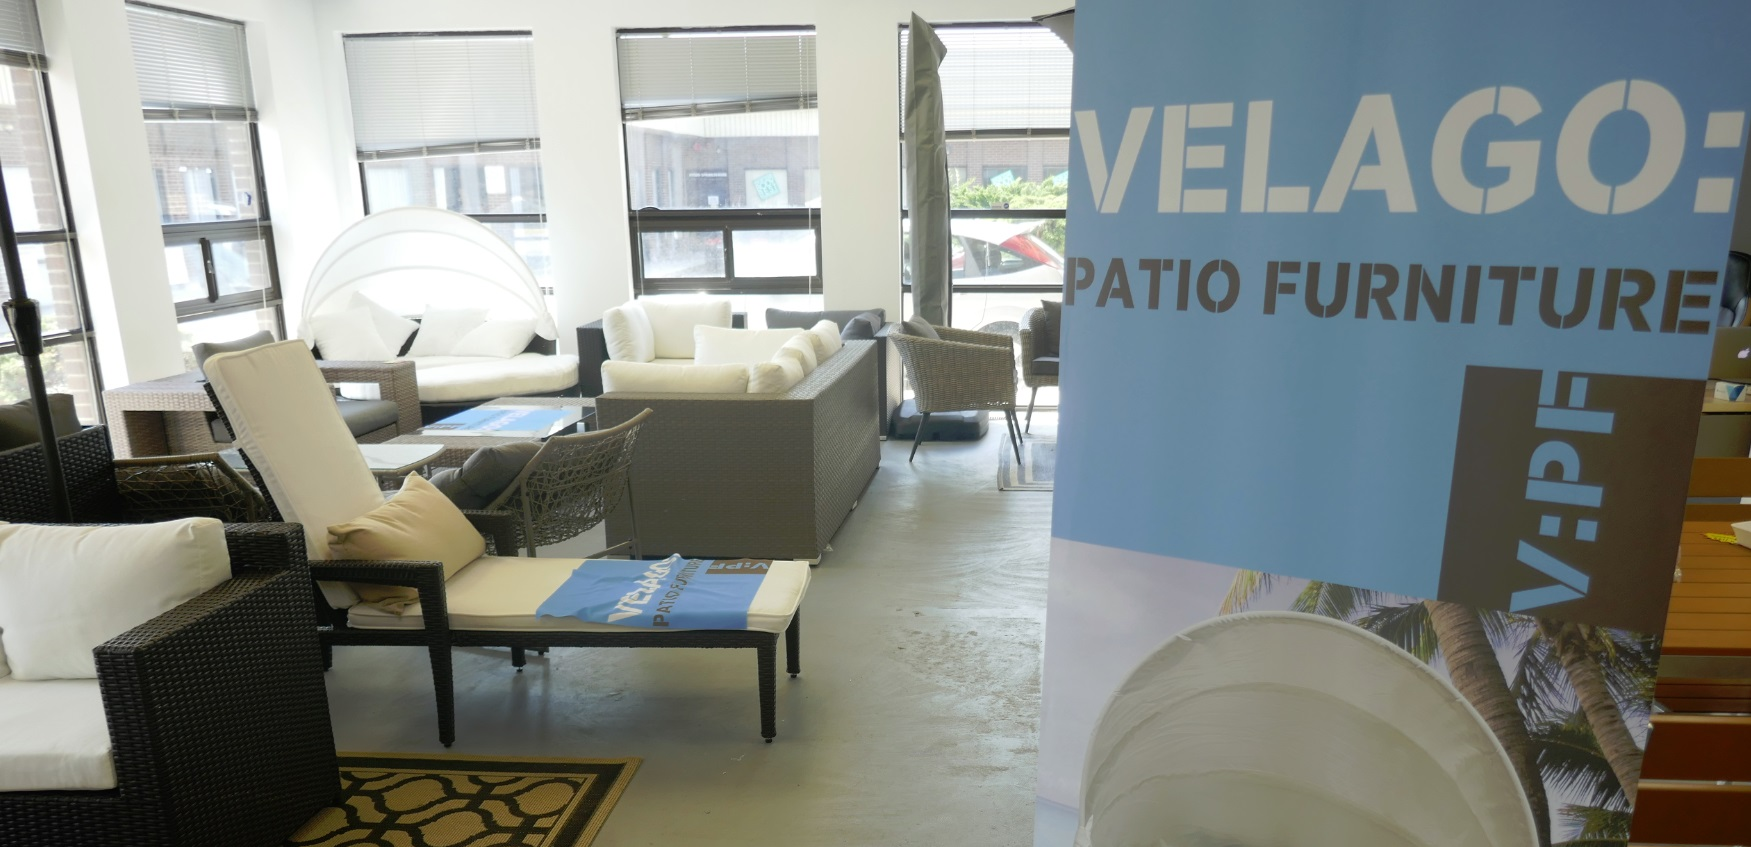 Velago Patio Furniture showroom in Etobicoke